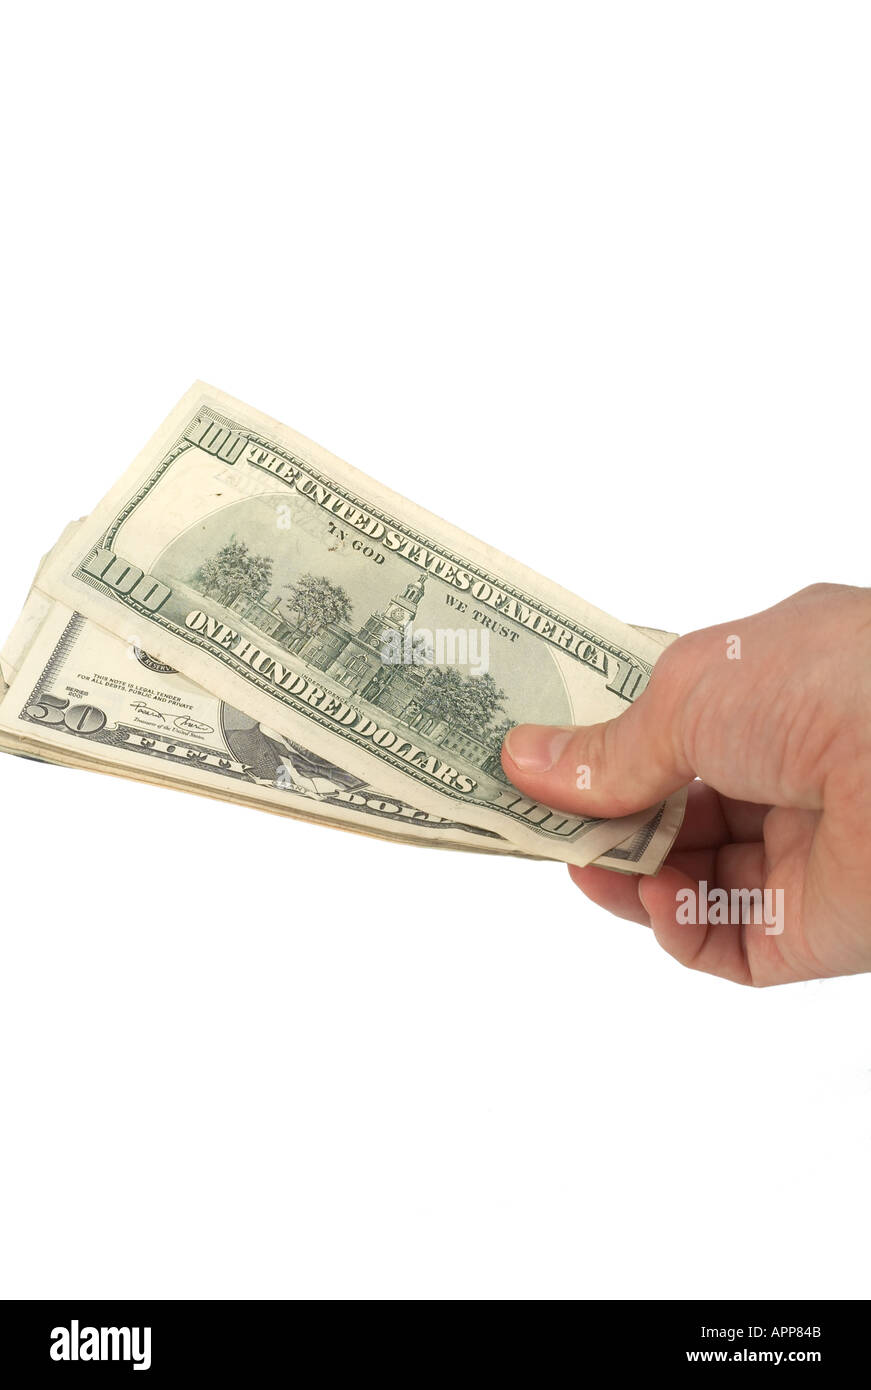 Cash money dough folding dollar exchange rate spend buy pay paid cash in hand money in pocket wallet fist full rich poor w - Stock Image